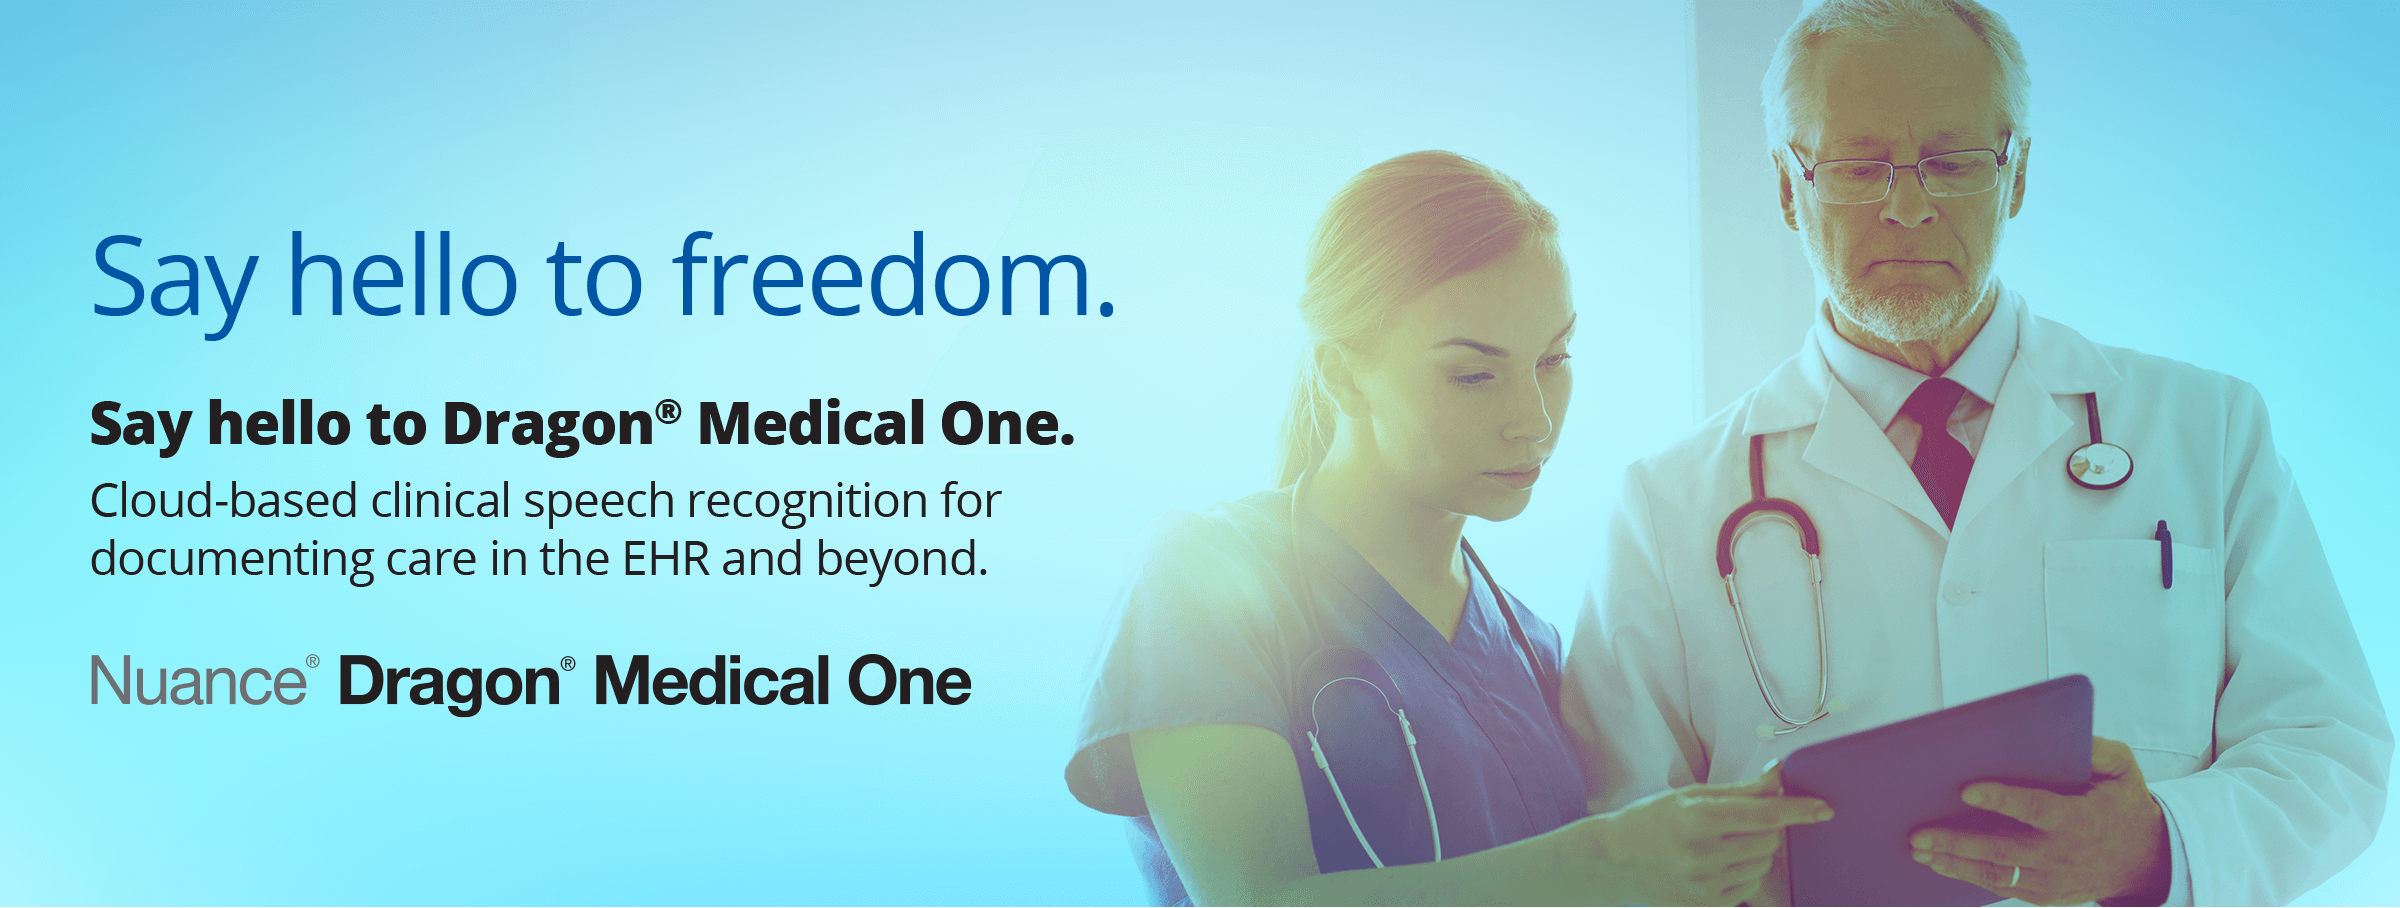 Say hello to freedom. Say hello to Dragon Medical One. Cloud-based clinical speech recognition for documenting care in the EHR and beyond. Nuance Dragon Medical One